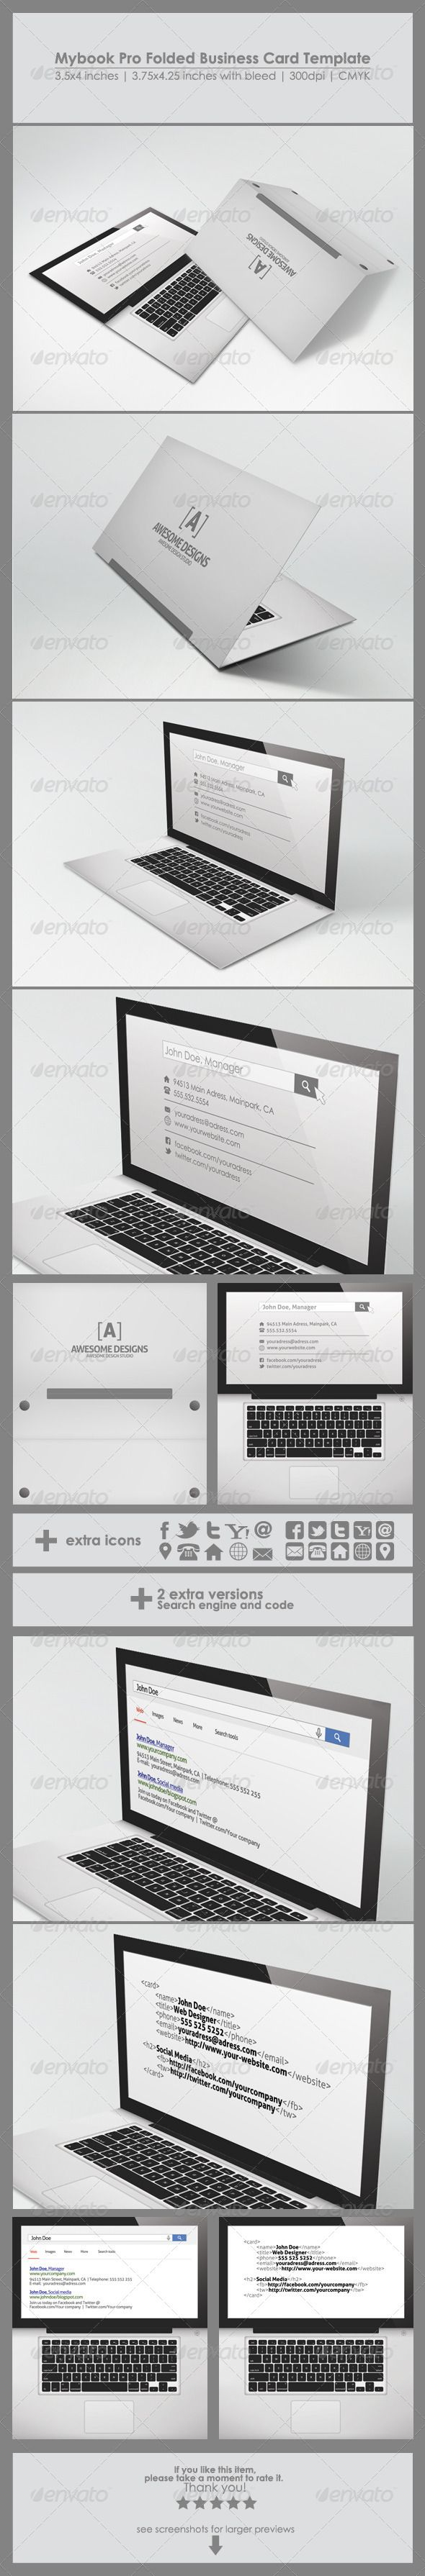 Mybook Pro Folded Business Card Template | Card templates ...